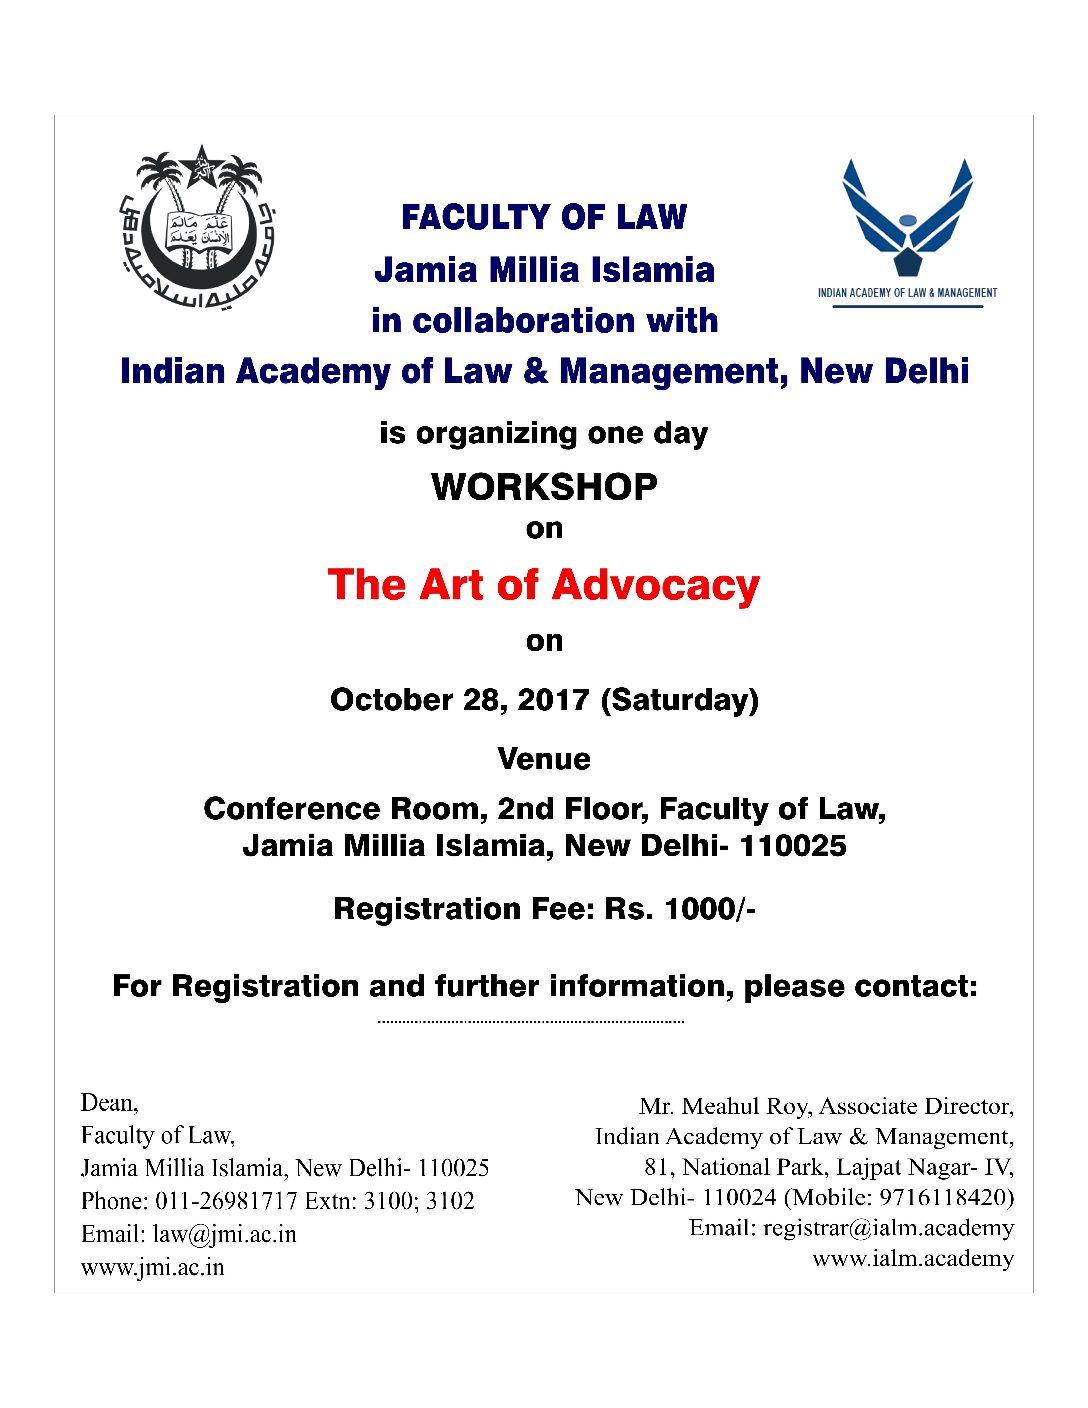 Jamia Milia Islamia's Workshop on The Art of Advocacy